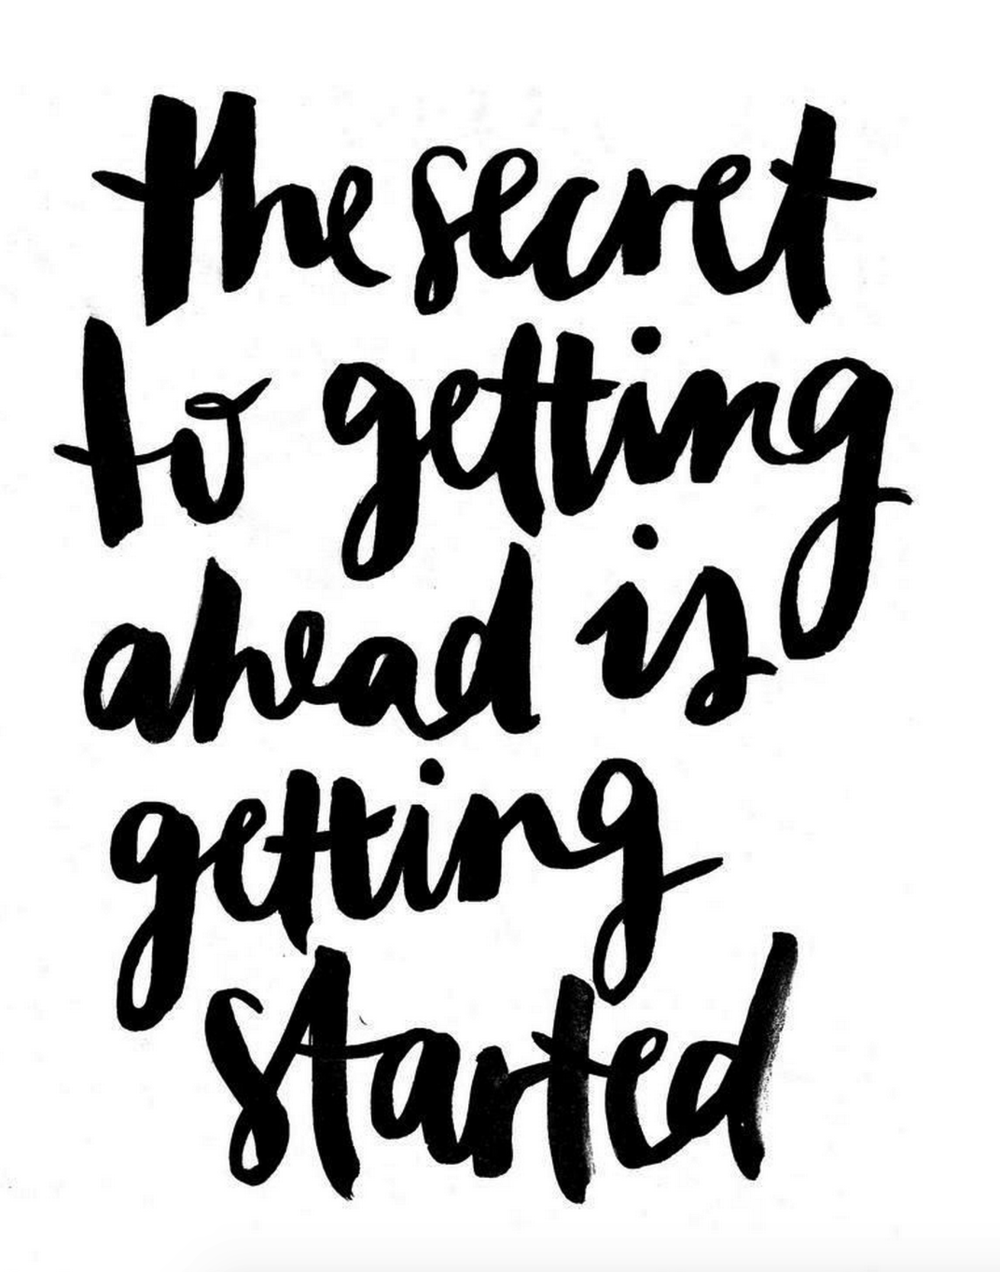 secret_to_getting_ahead